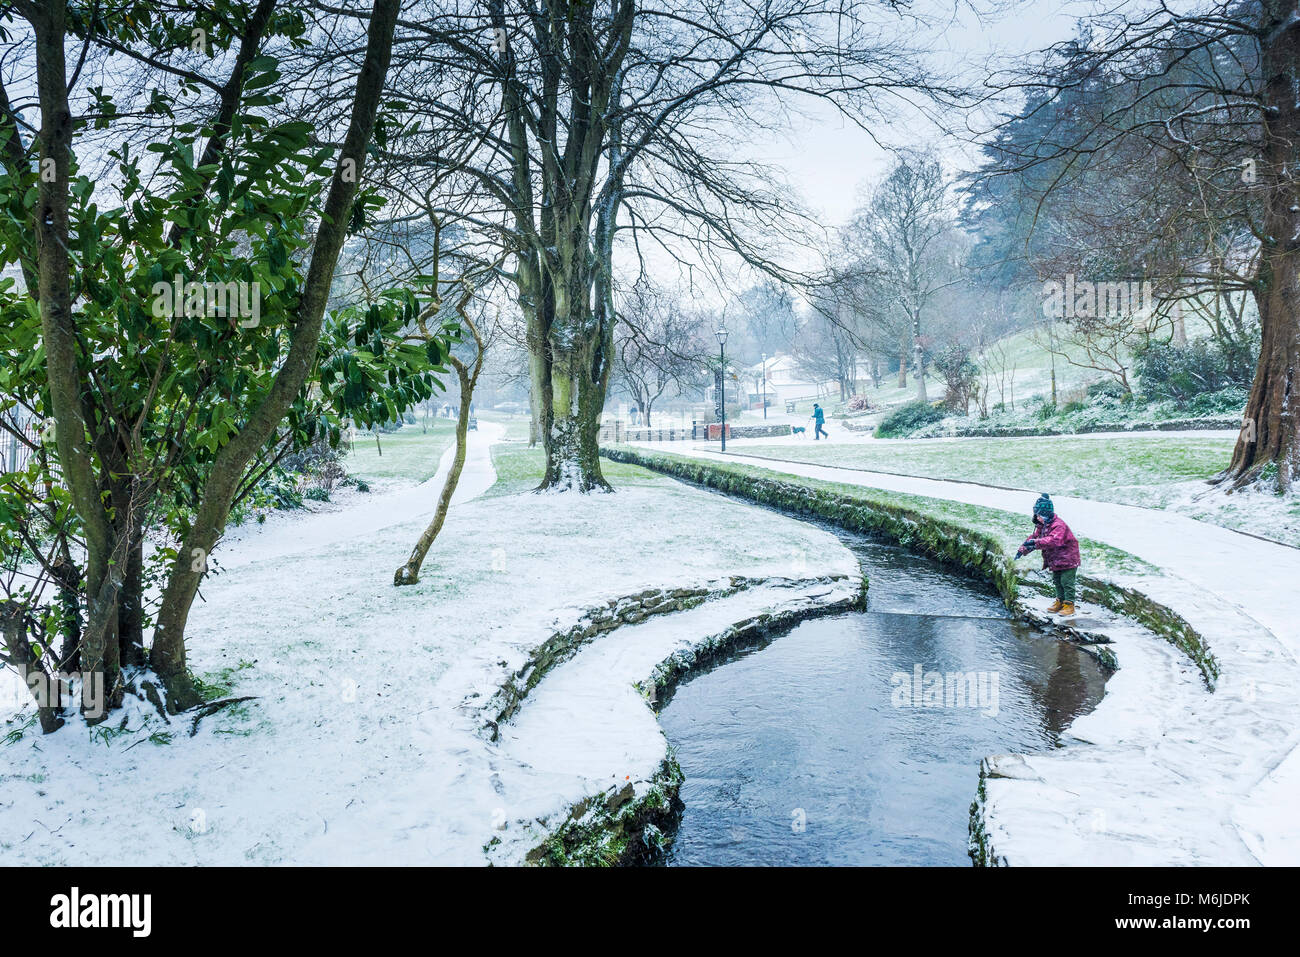 A winter scene in Trenance Gardens in Newquay Cornwall. - Stock Image